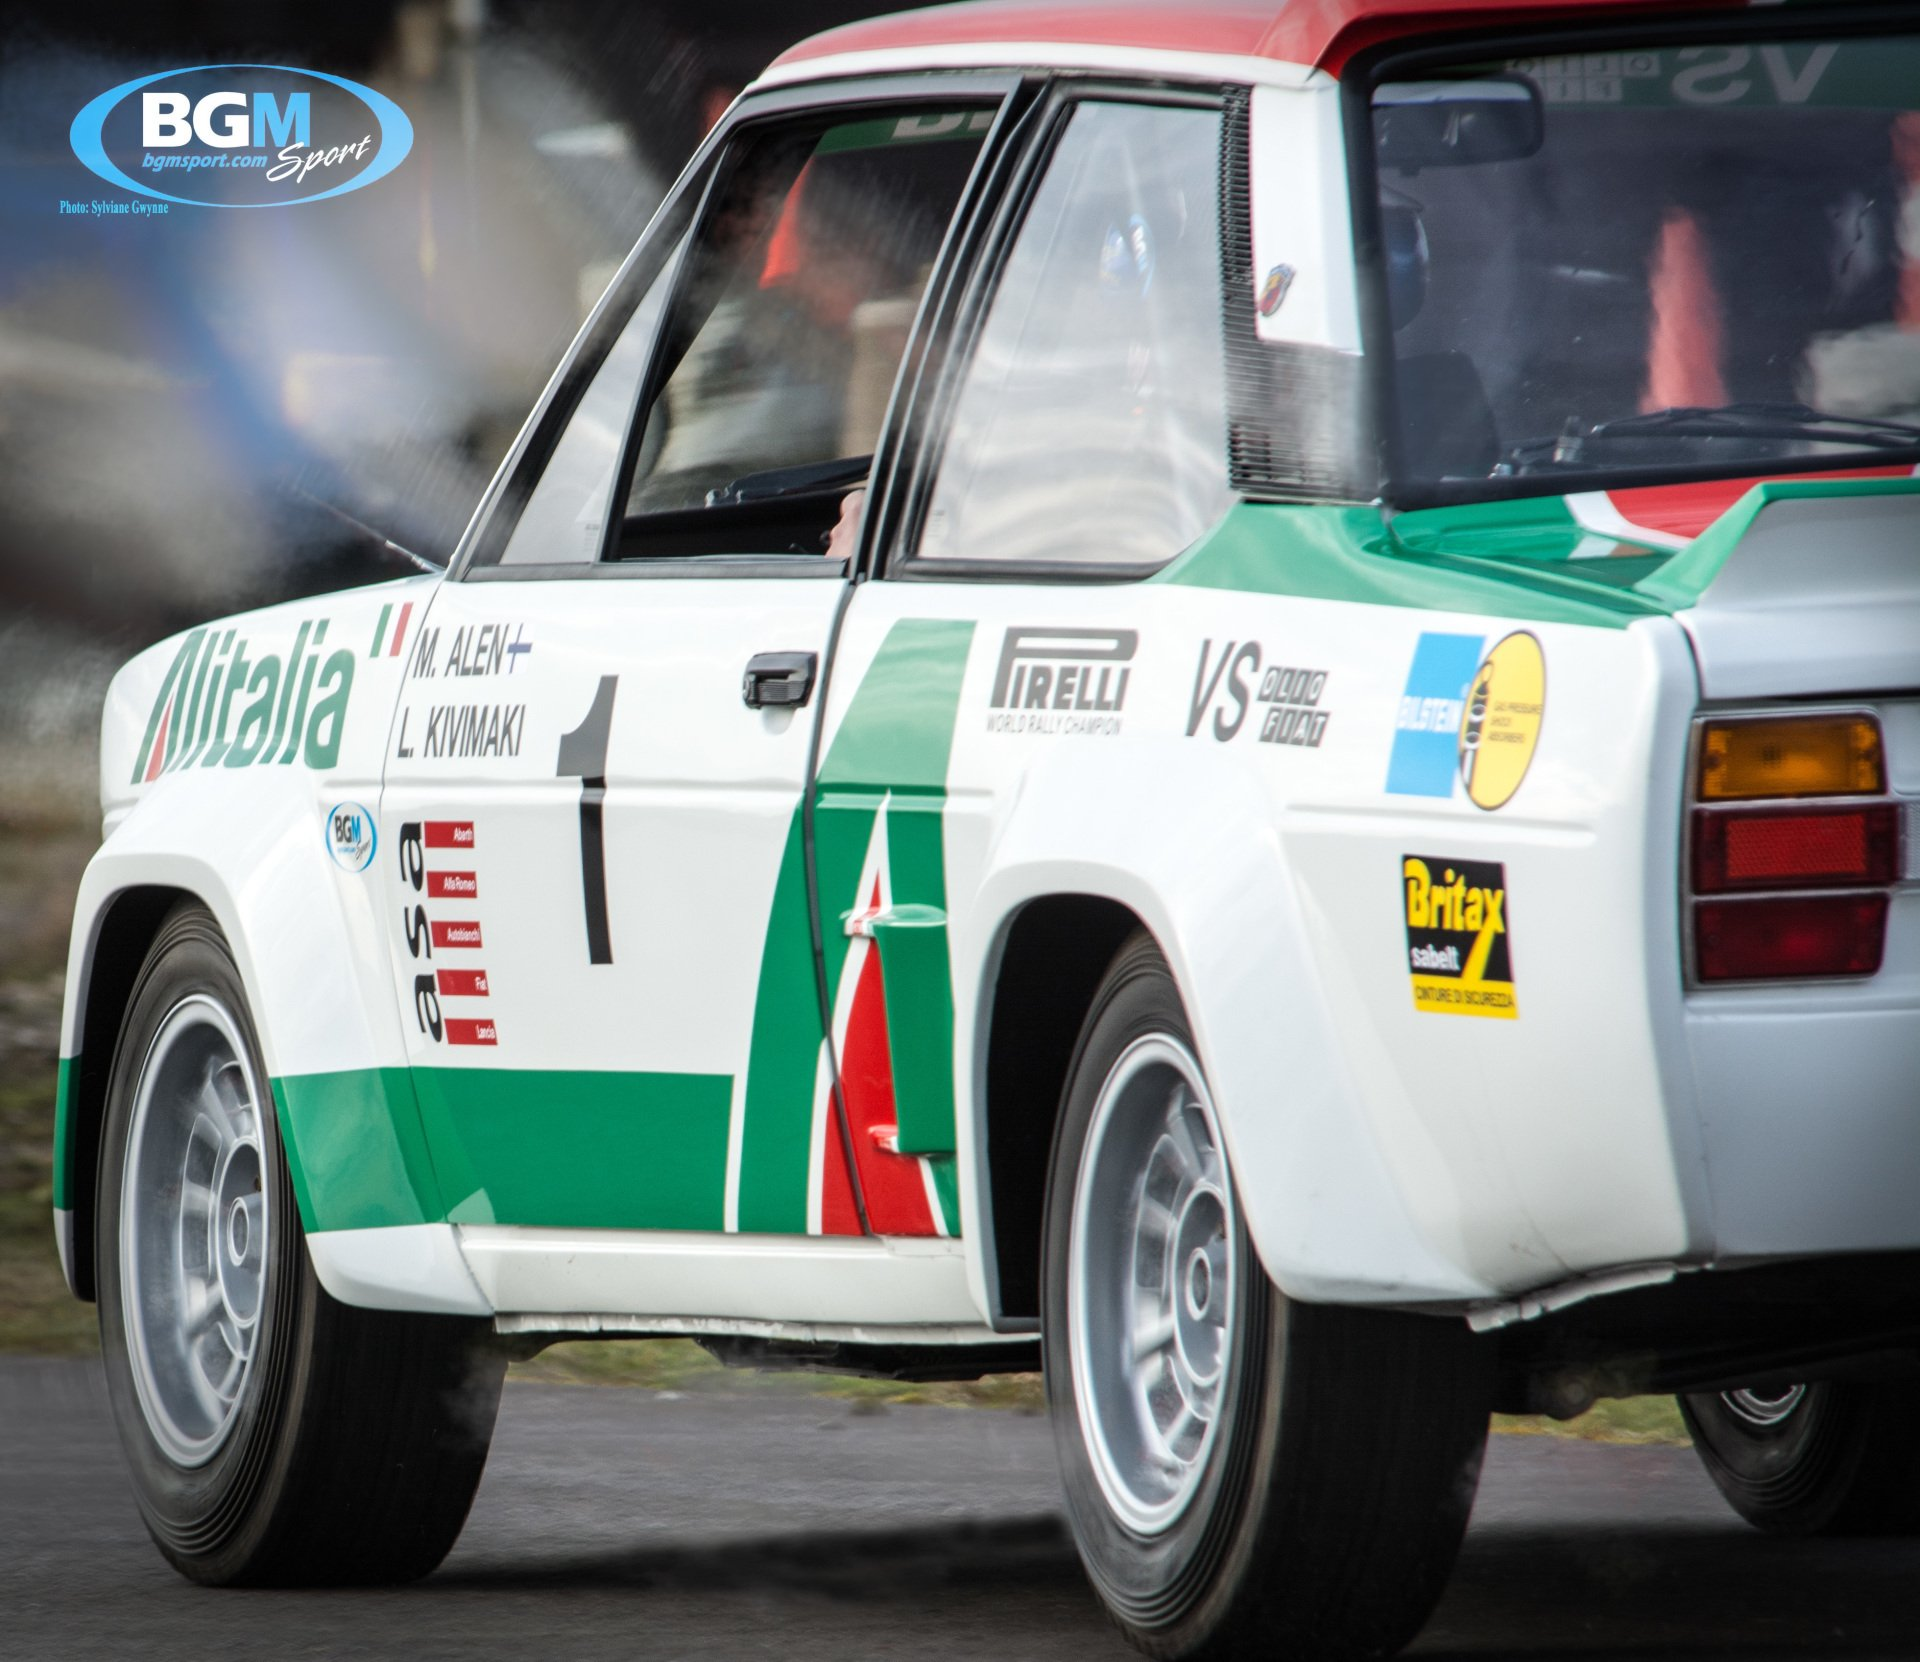 fiat-131-abarth-grp-4-rally-car-38